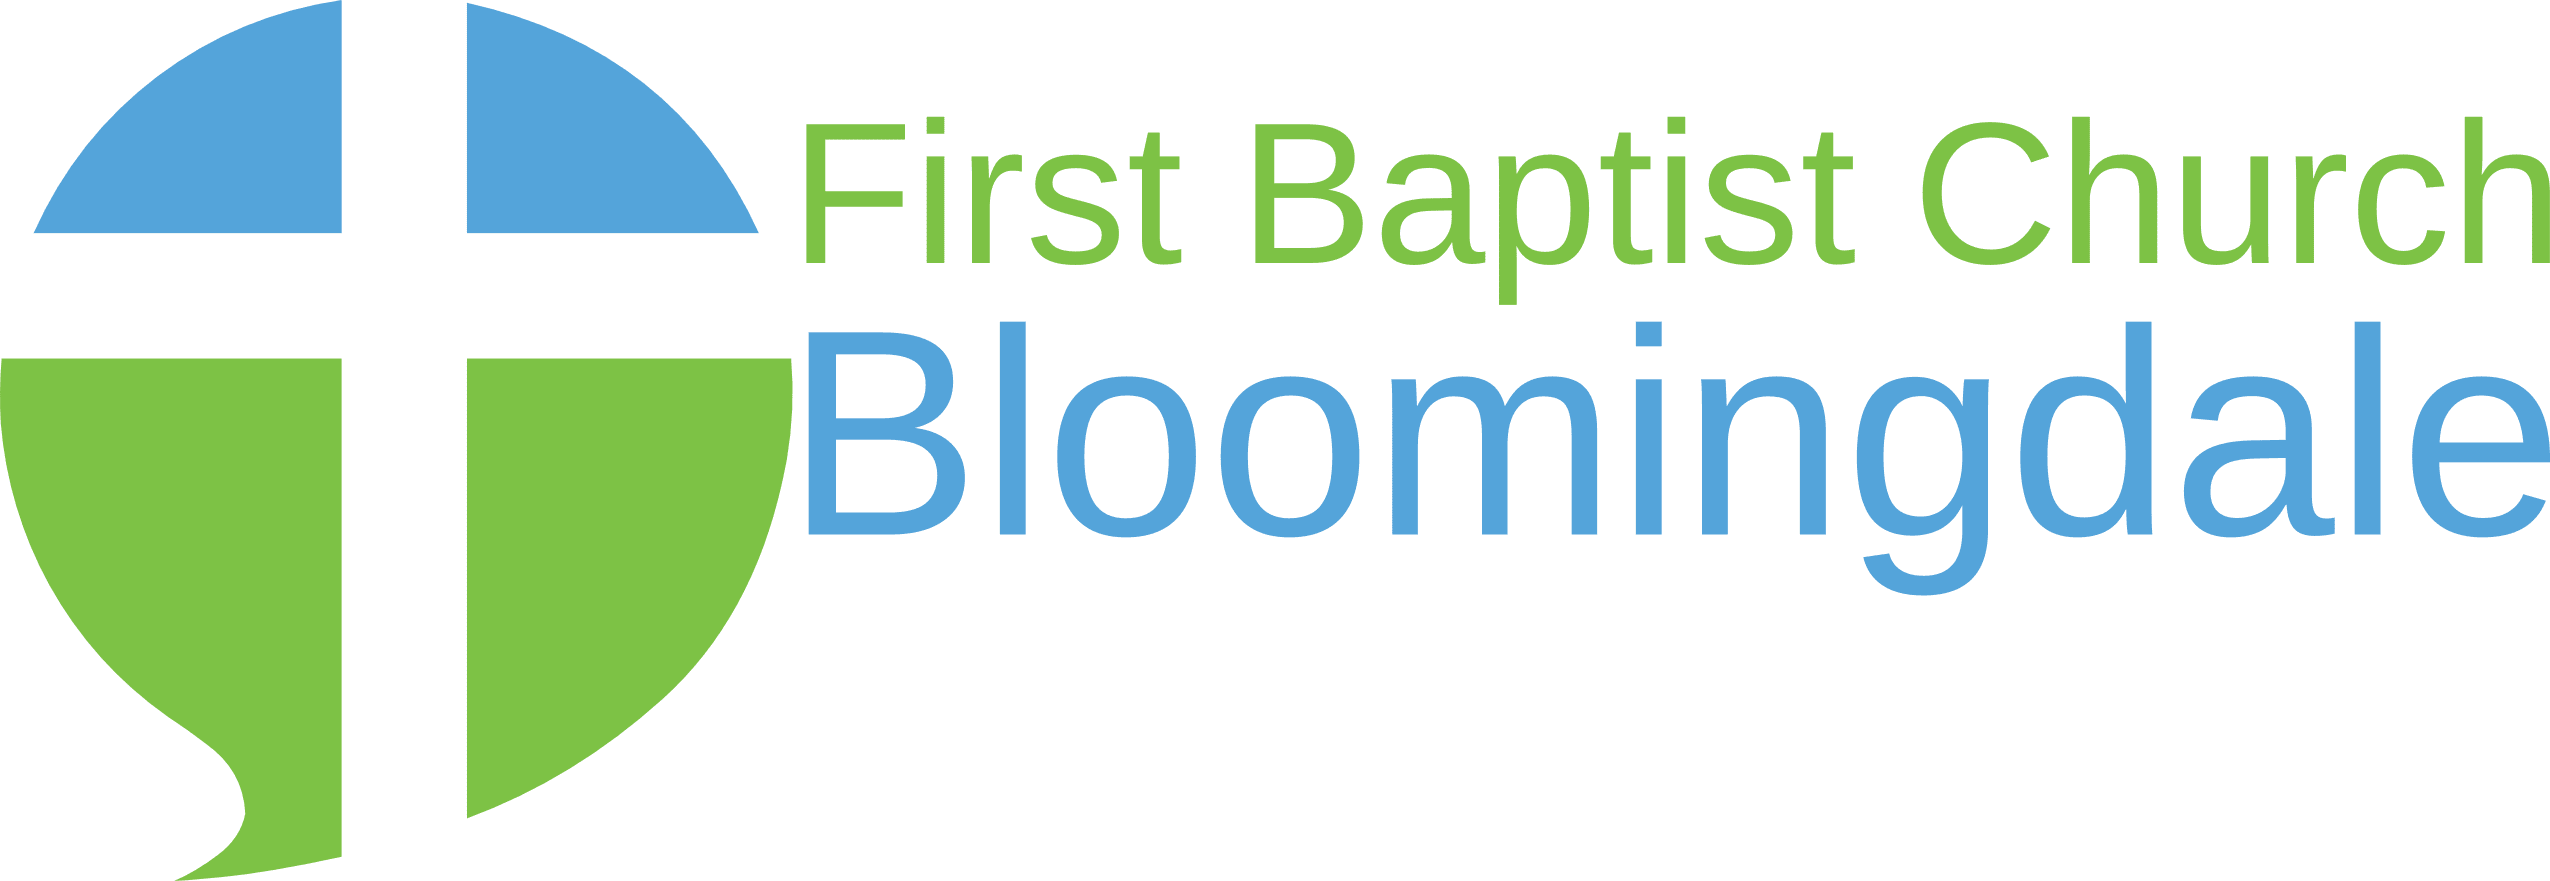 First Baptist Church of Bloomingdale